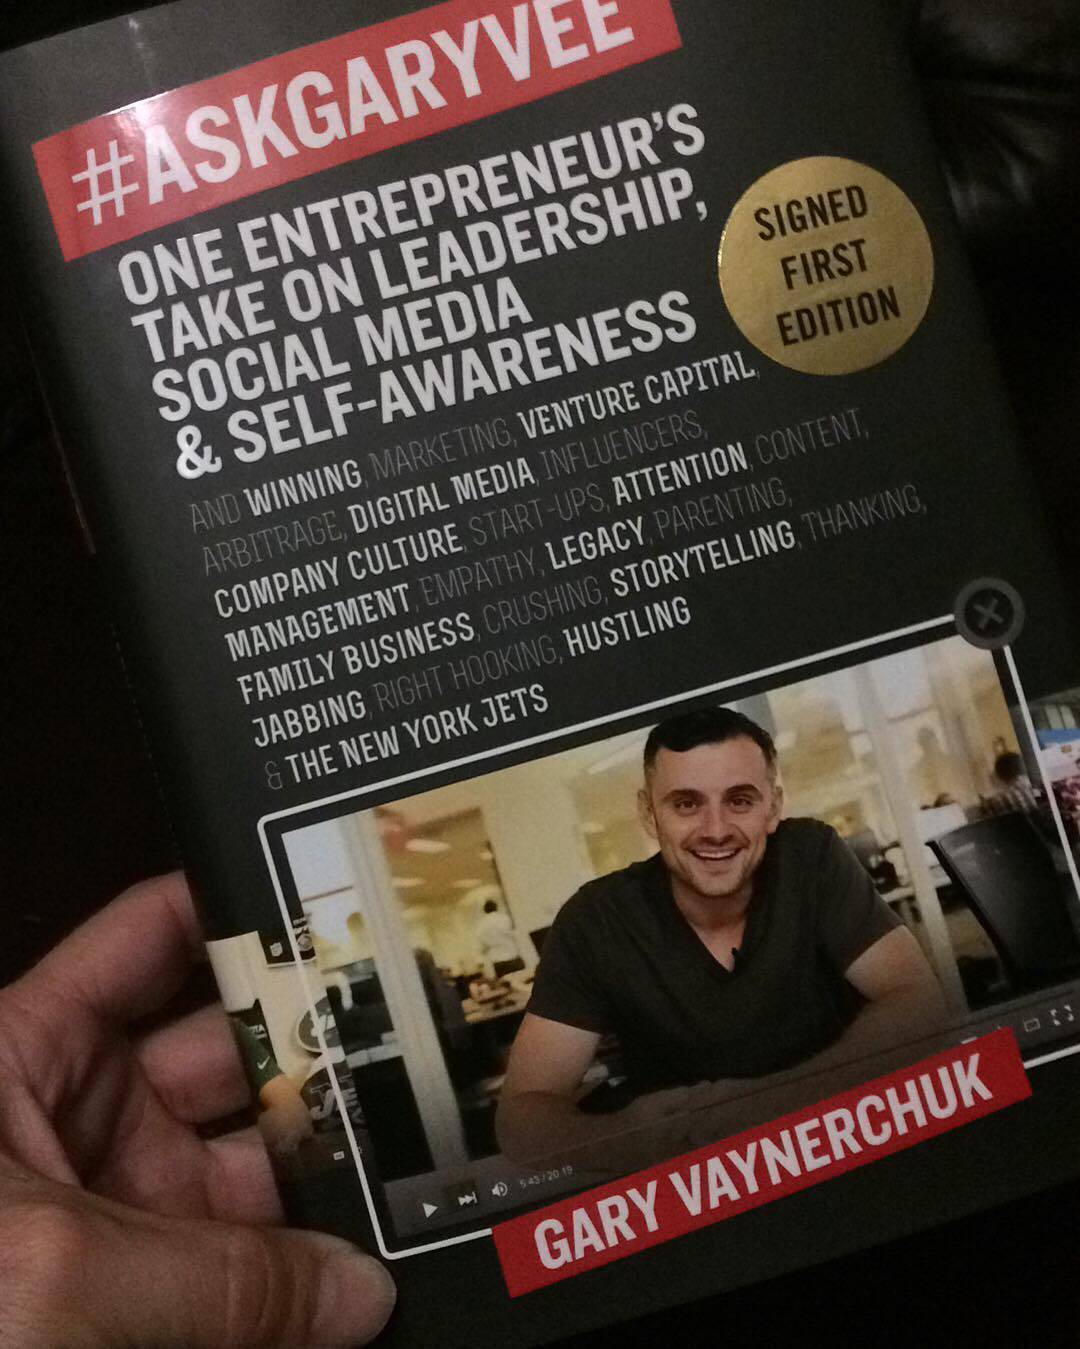 This one is going to be a banger!! #thanks @garyvee #askgaryvee #book #snapchat #skateboarding #longboarding #reading #business #entrepreneur